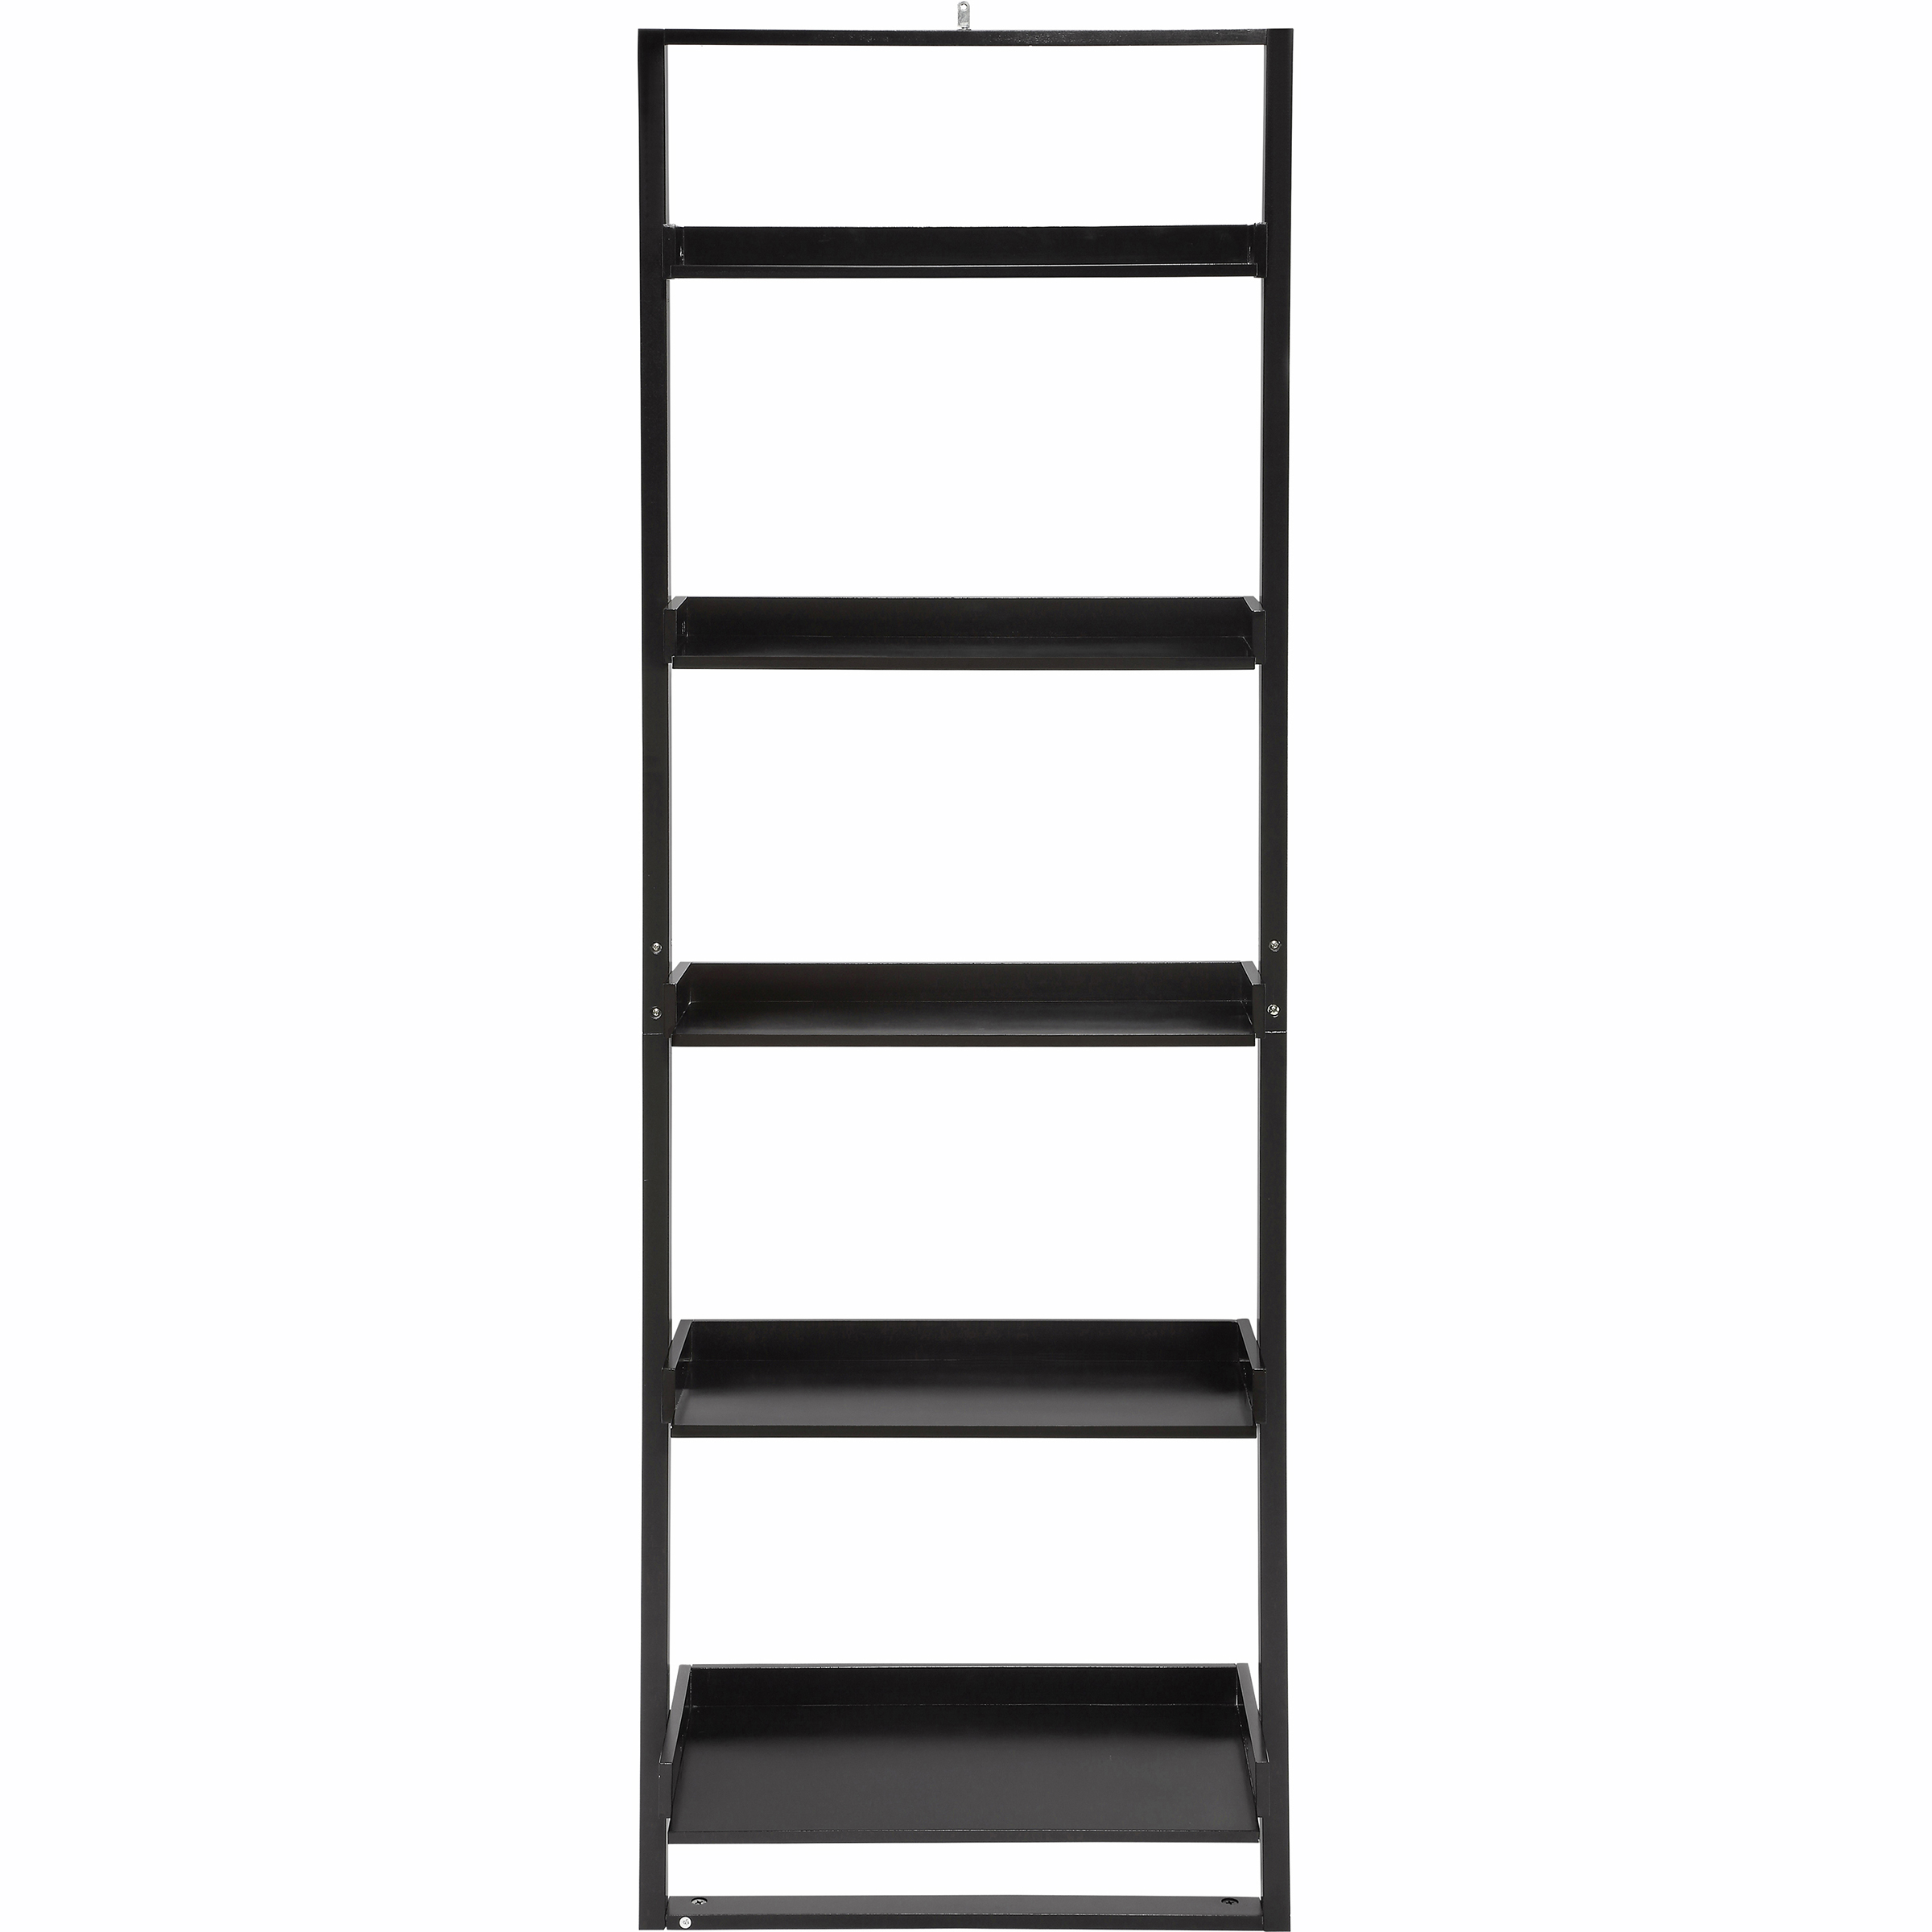 storage ladder bookshelf office wonderful leaning loft espresso furniture shelves shelf with wooden ikea home tall awesome bookshelves bookcase bookcases design book